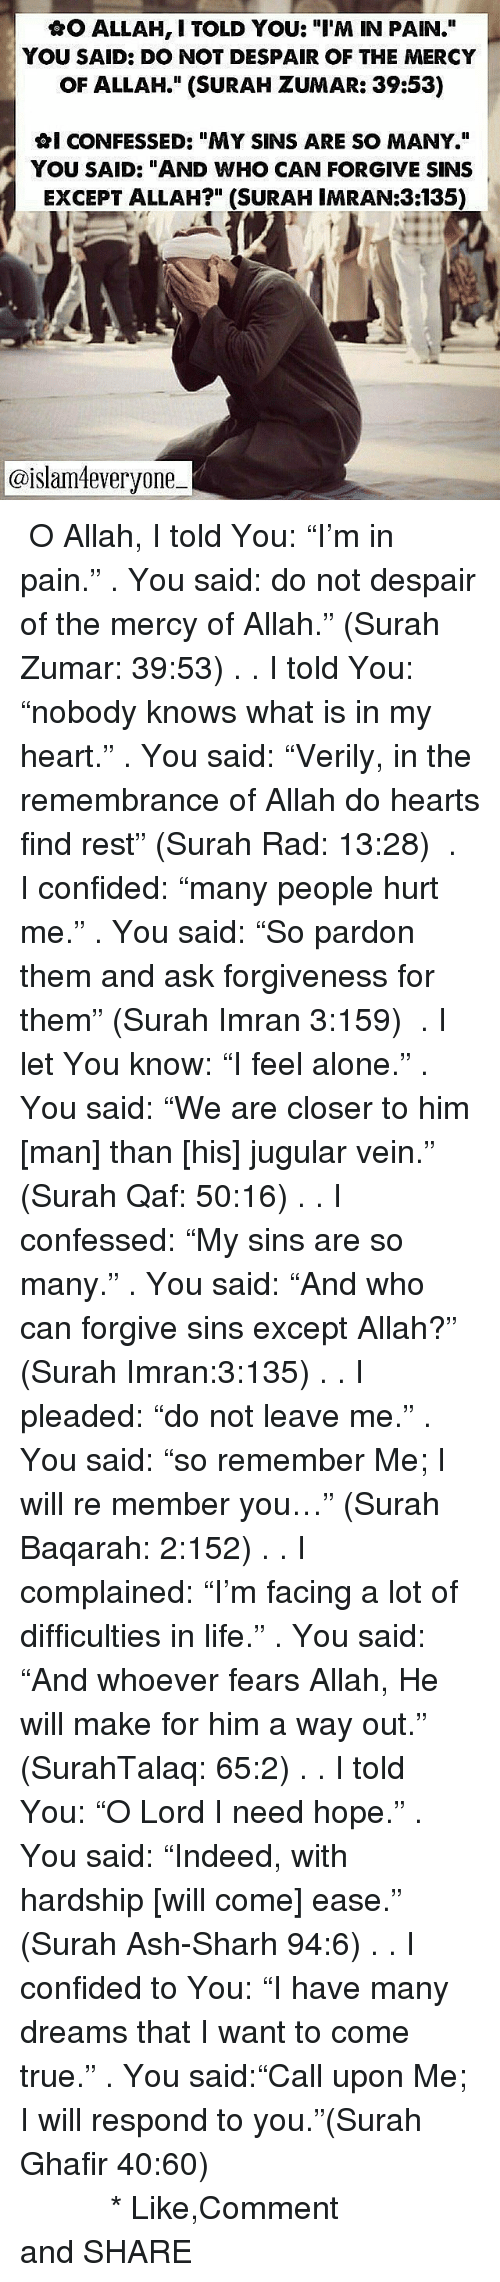 "Being Alone, Ash, and Life: AO ALLAH, I TOLD YOU: ""I'M IN PAIN.""  YOU SAID: DO NOT DESPAIR OF THE MERCY  OF ALLAH."" (SURAH ZUMAR: 39:53)  GI CONFESSED: ""MY SINS ARE SO MANY.""  YOU SAID: ""AND WHO CAN FORGIVE SINS  EXCEPT ALLAH?"" (SURAH IMRAN:3135)  @islam4everyone- ・・・ ✿O Allah, I told You: ""I'm in pain."" . You said: do not despair of the mercy of Allah."" (Surah Zumar: 39:53) ⊹. . ✿I told You: ""nobody knows what is in my heart."" . You said: ""Verily, in the remembrance of Allah do hearts find rest"" (Surah Rad: 13:28) ⊹⊱ . ✿I confided: ""many people hurt me."" . You said: ""So pardon them and ask forgiveness for them"" (Surah Imran 3:159) ⊹⊱ . ✿I let You know: ""I feel alone."" . You said: ""We are closer to him [man] than [his] jugular vein."" (Surah Qaf: 50:16) ⊹. . ✿I confessed: ""My sins are so many."" . You said: ""And who can forgive sins except Allah?"" (Surah Imran:3:135) ⊹. . ✿I pleaded: ""do not leave me."" . You said: ""so remember Me; I will re member you…"" (Surah Baqarah: 2:152) ⊹. . ⊱✿I complained: ""I'm facing a lot of difficulties in life."" . You said: ""And whoever fears Allah, He will make for him a way out."" (SurahTalaq: 65:2) ⊹⊱. . ✿I told You: ""O Lord I need hope."" . You said: ""Indeed, with hardship [will come] ease."" (Surah Ash-Sharh 94:6) ⊹⊱. . ✿I confided to You: ""I have many dreams that I want to come true."" . You said:""Call upon Me; I will respond to you.""(Surah Ghafir 40:60) سُبْحَانَ اللهِ وَبِحَمْدِهِ *سُبْحَانَ اللهِ الْعَظِيْمِ Like,Comment and SHARE"